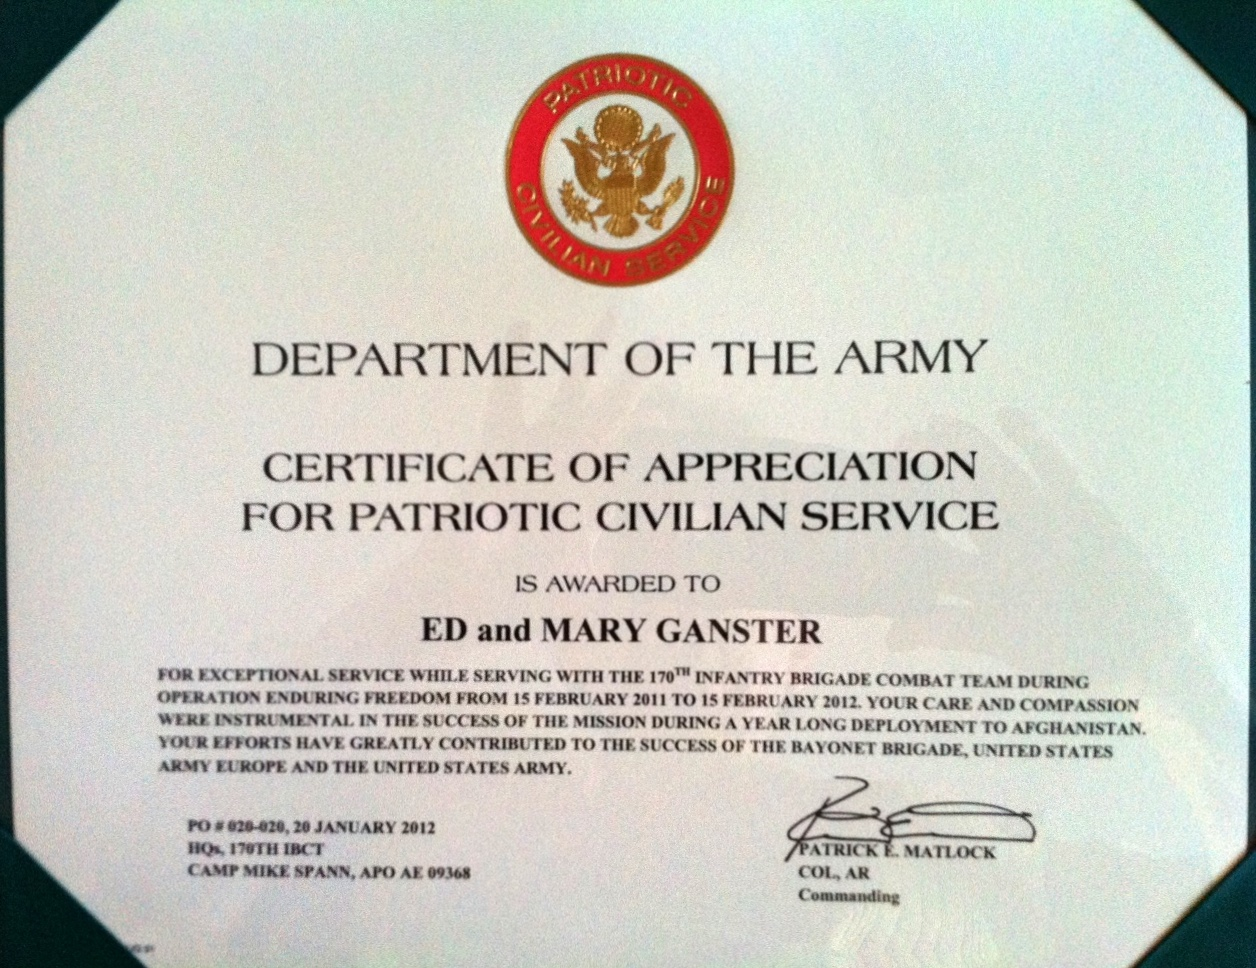 Certificates of appreciation wording samples free medical form army certificate of appreciation template certificate of appreciation army certificate of appreciation template yadclub